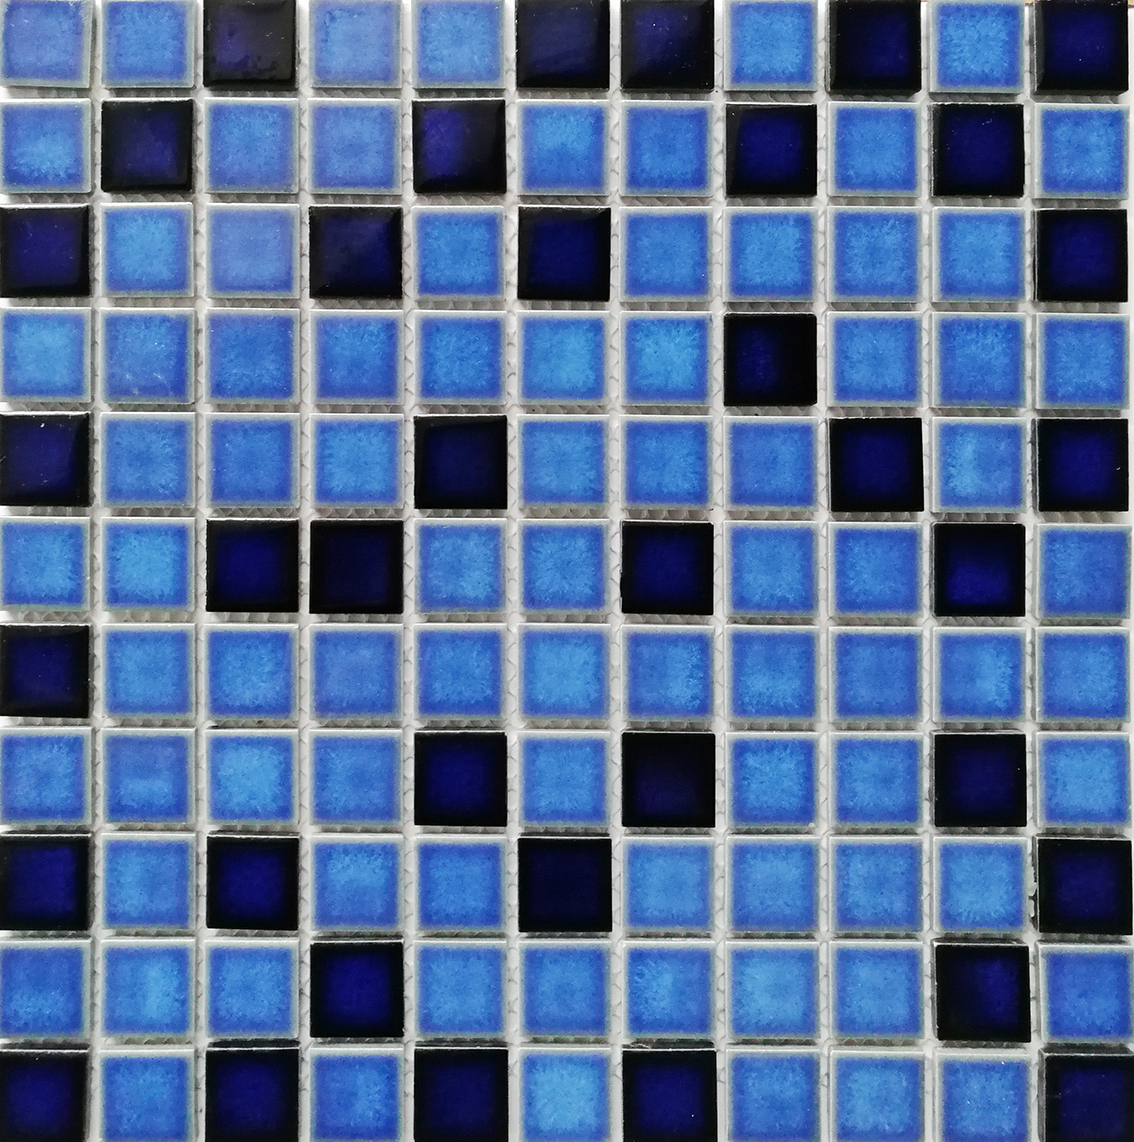 23x23mm Hot Sale Foshan Ceramic Blue Mosaic For Swimming Pool Decor